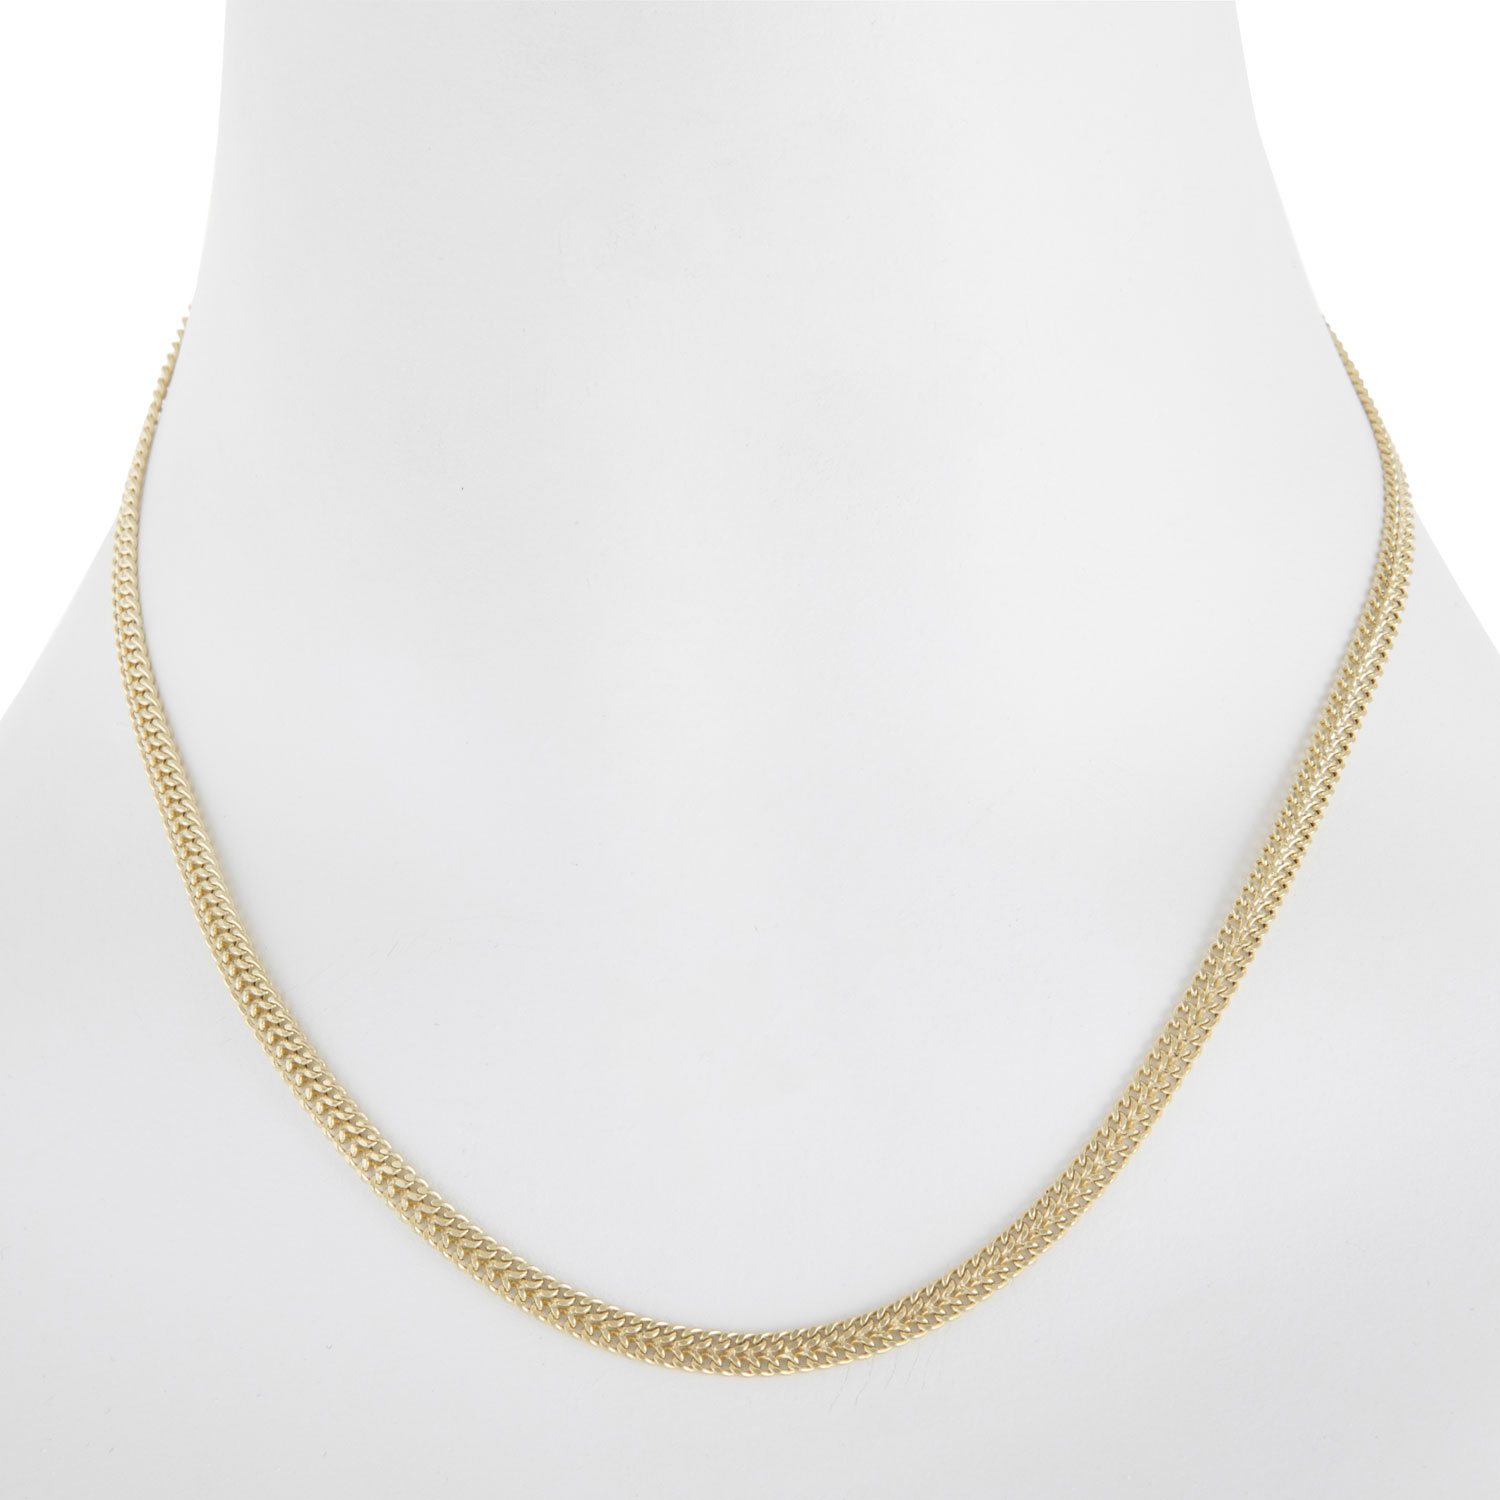 gold chain necklace selection